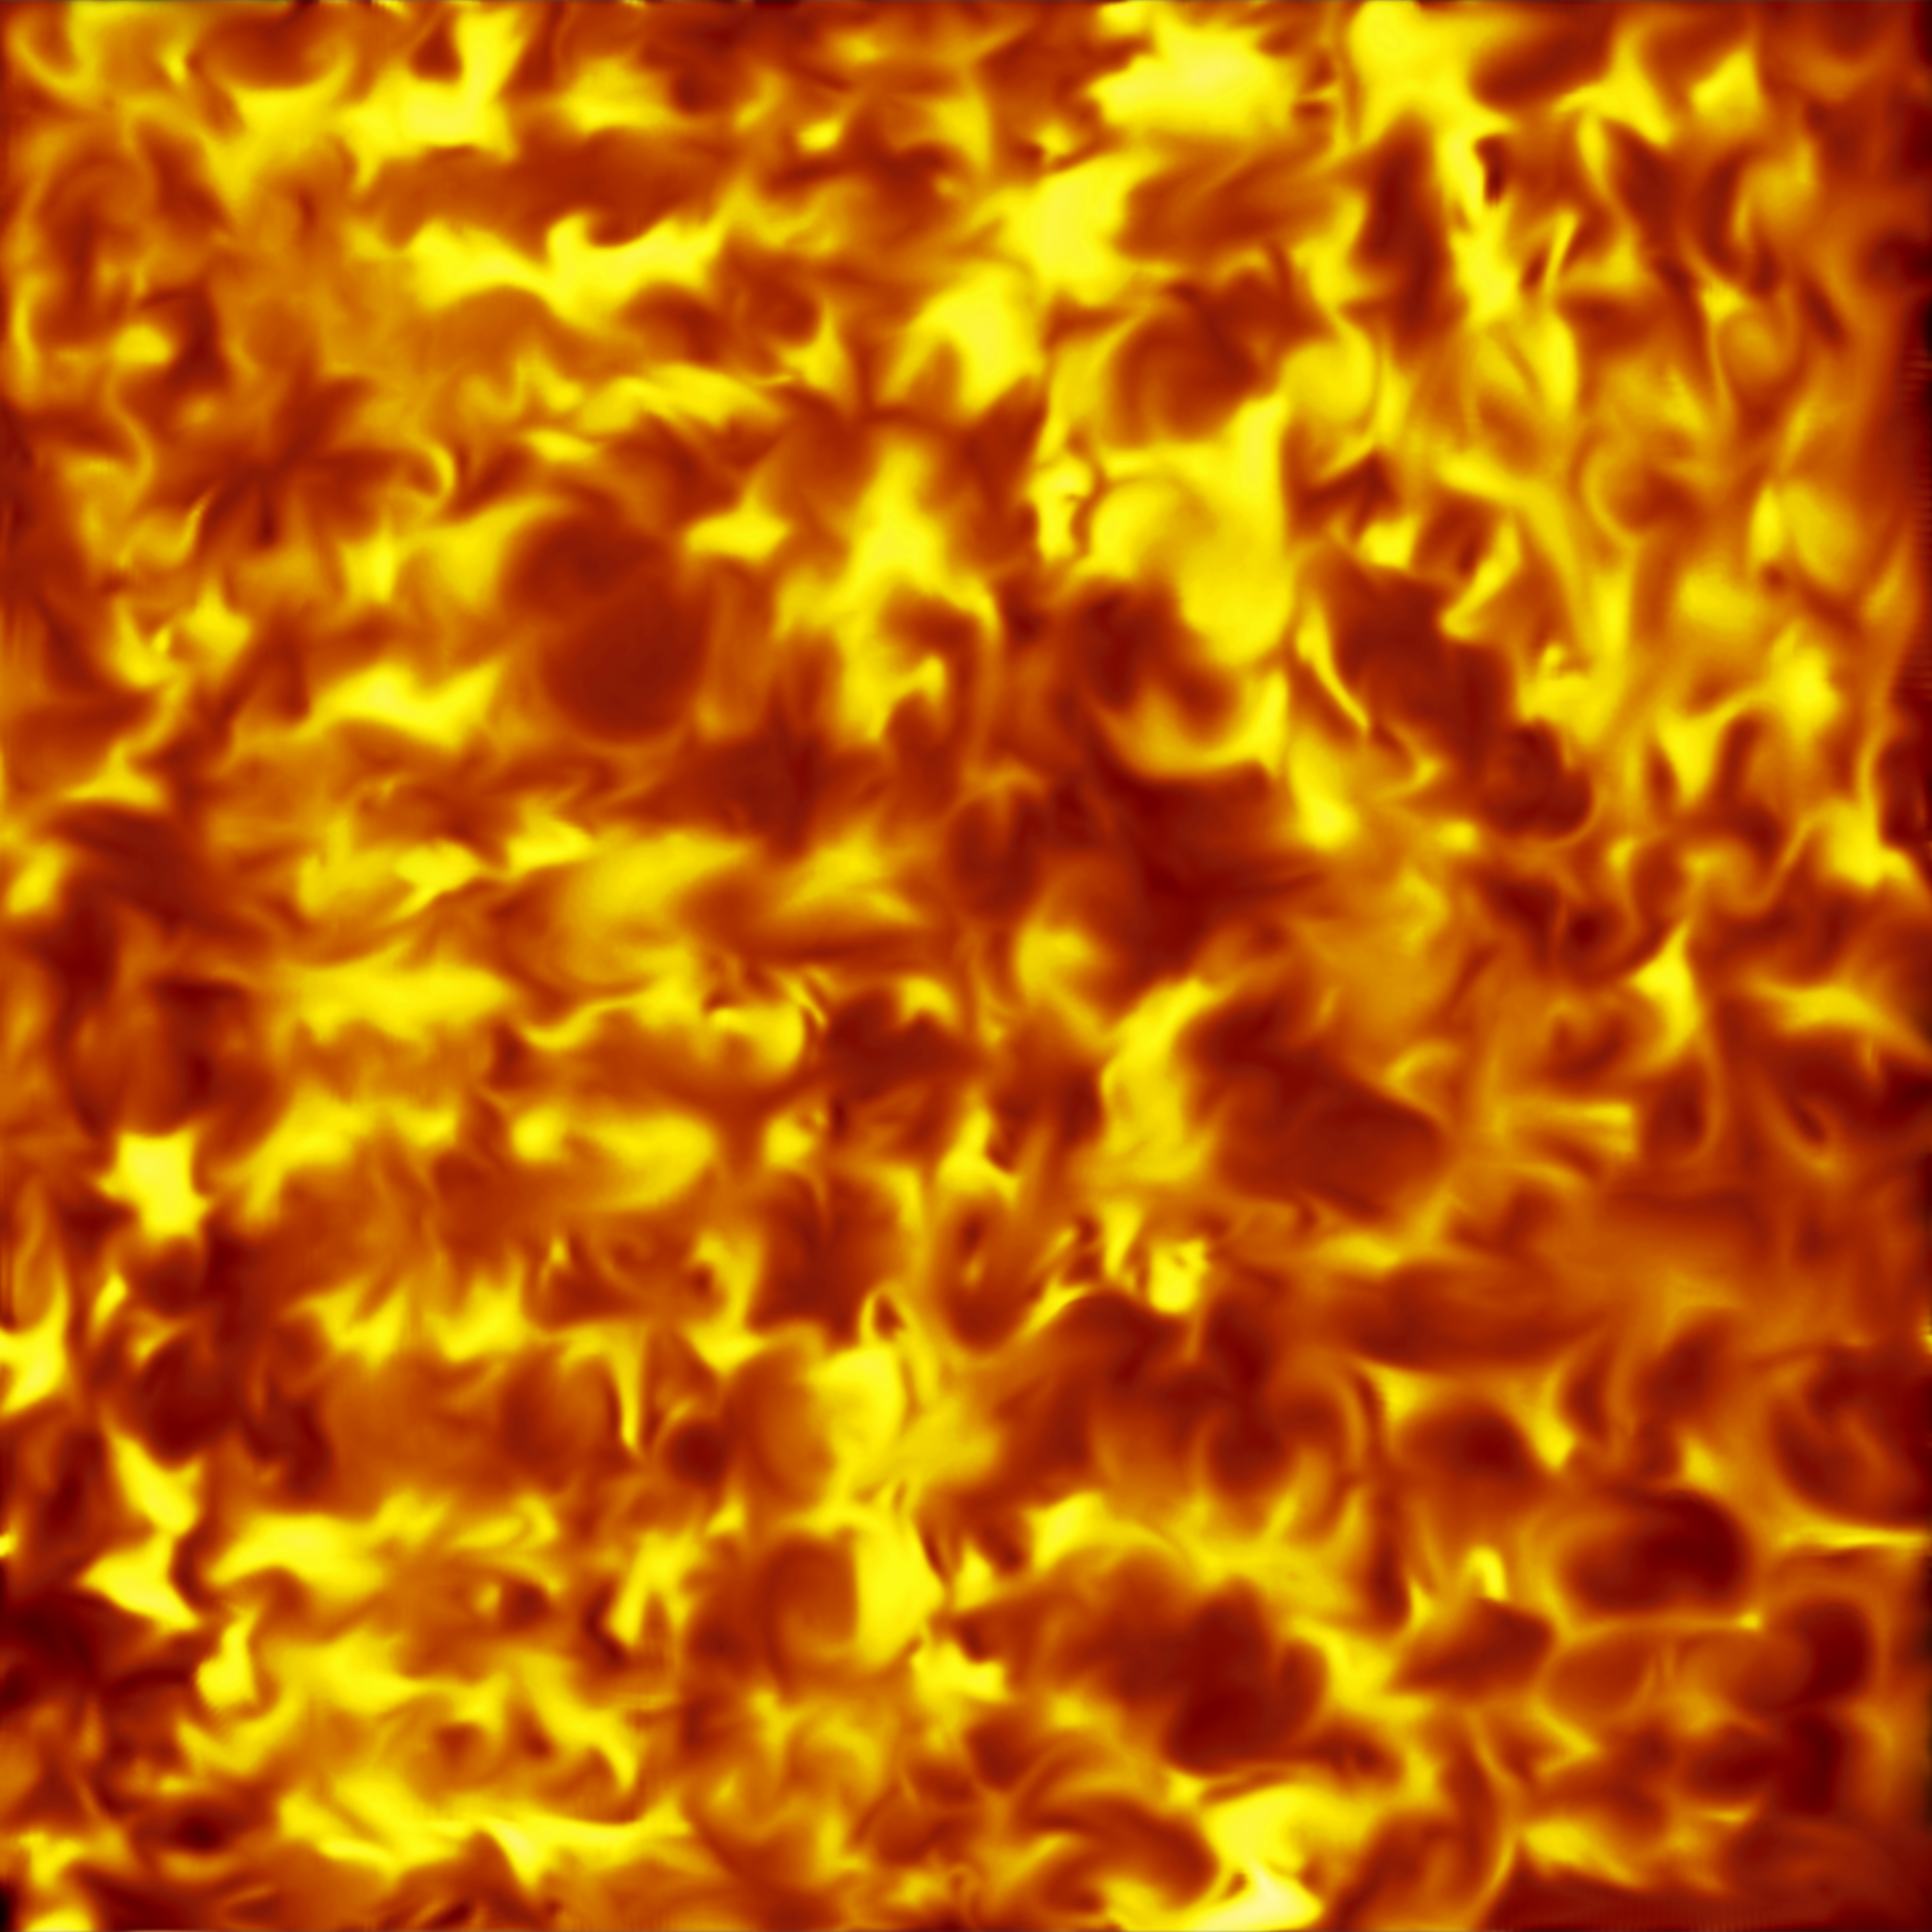 File:Fire Texture 01.png.